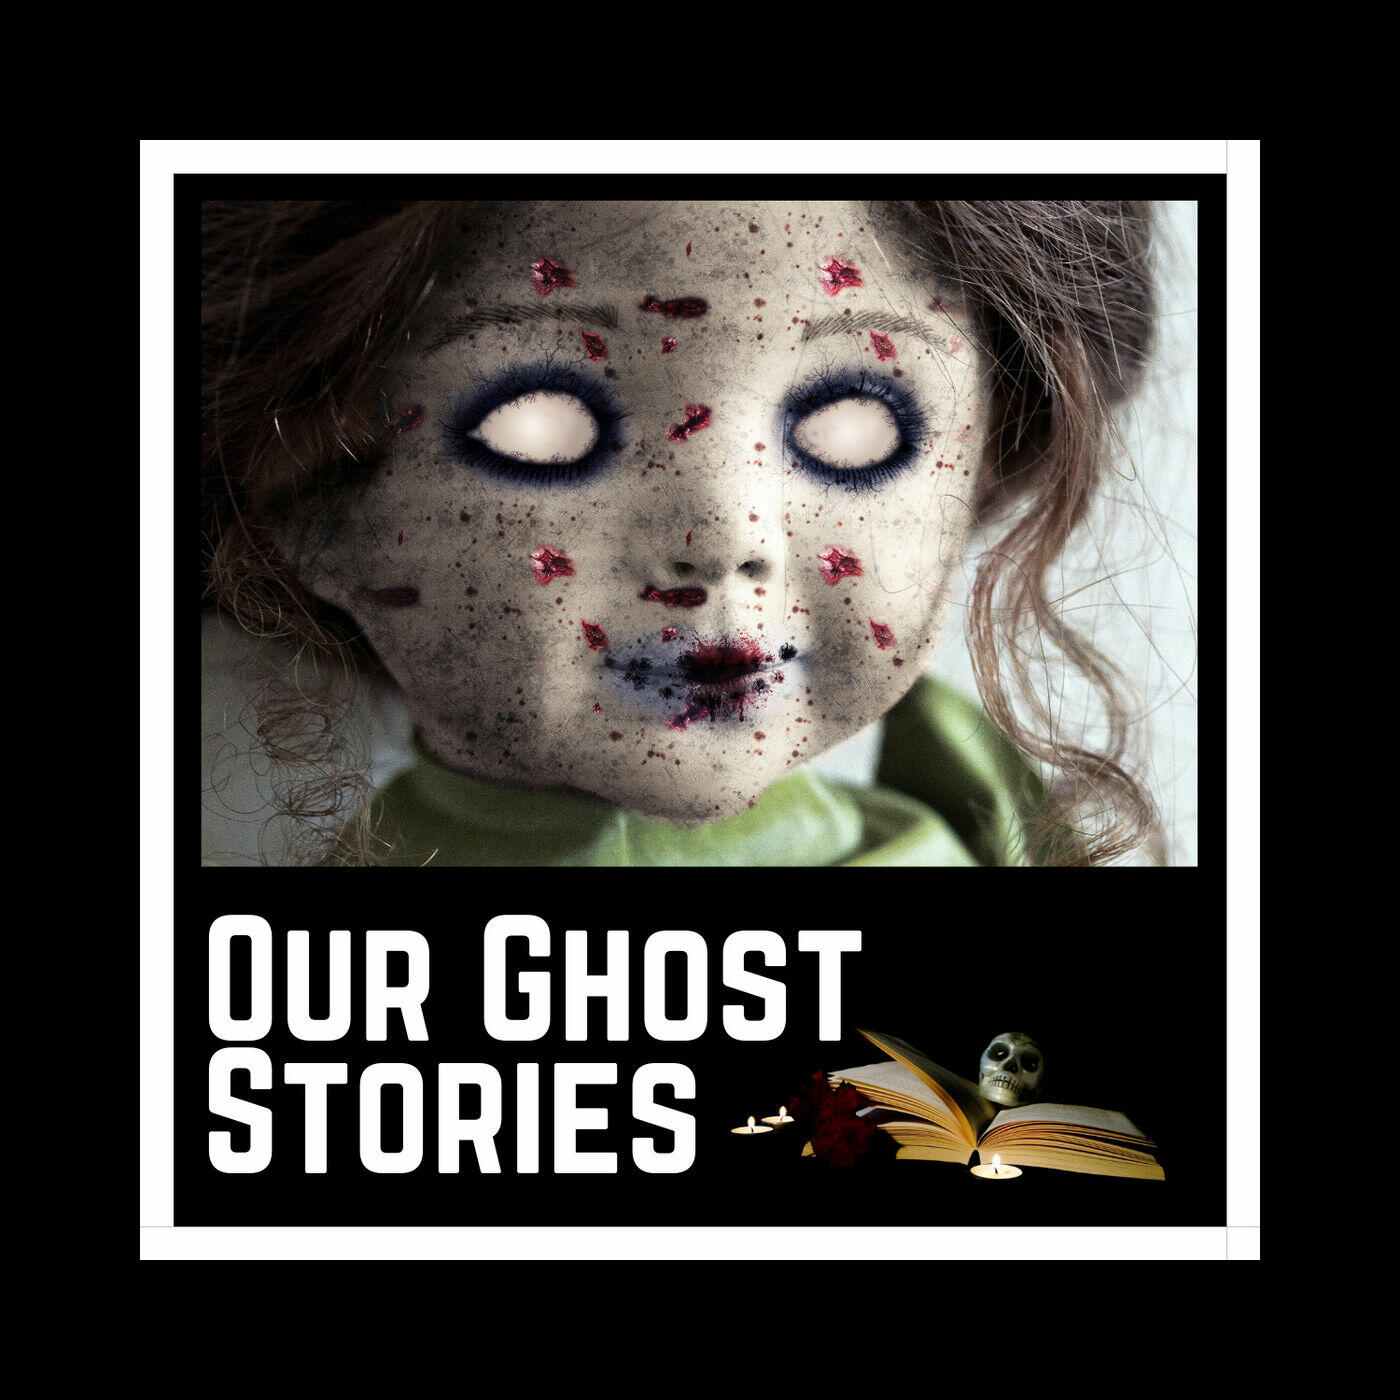 Our Ghost Stories